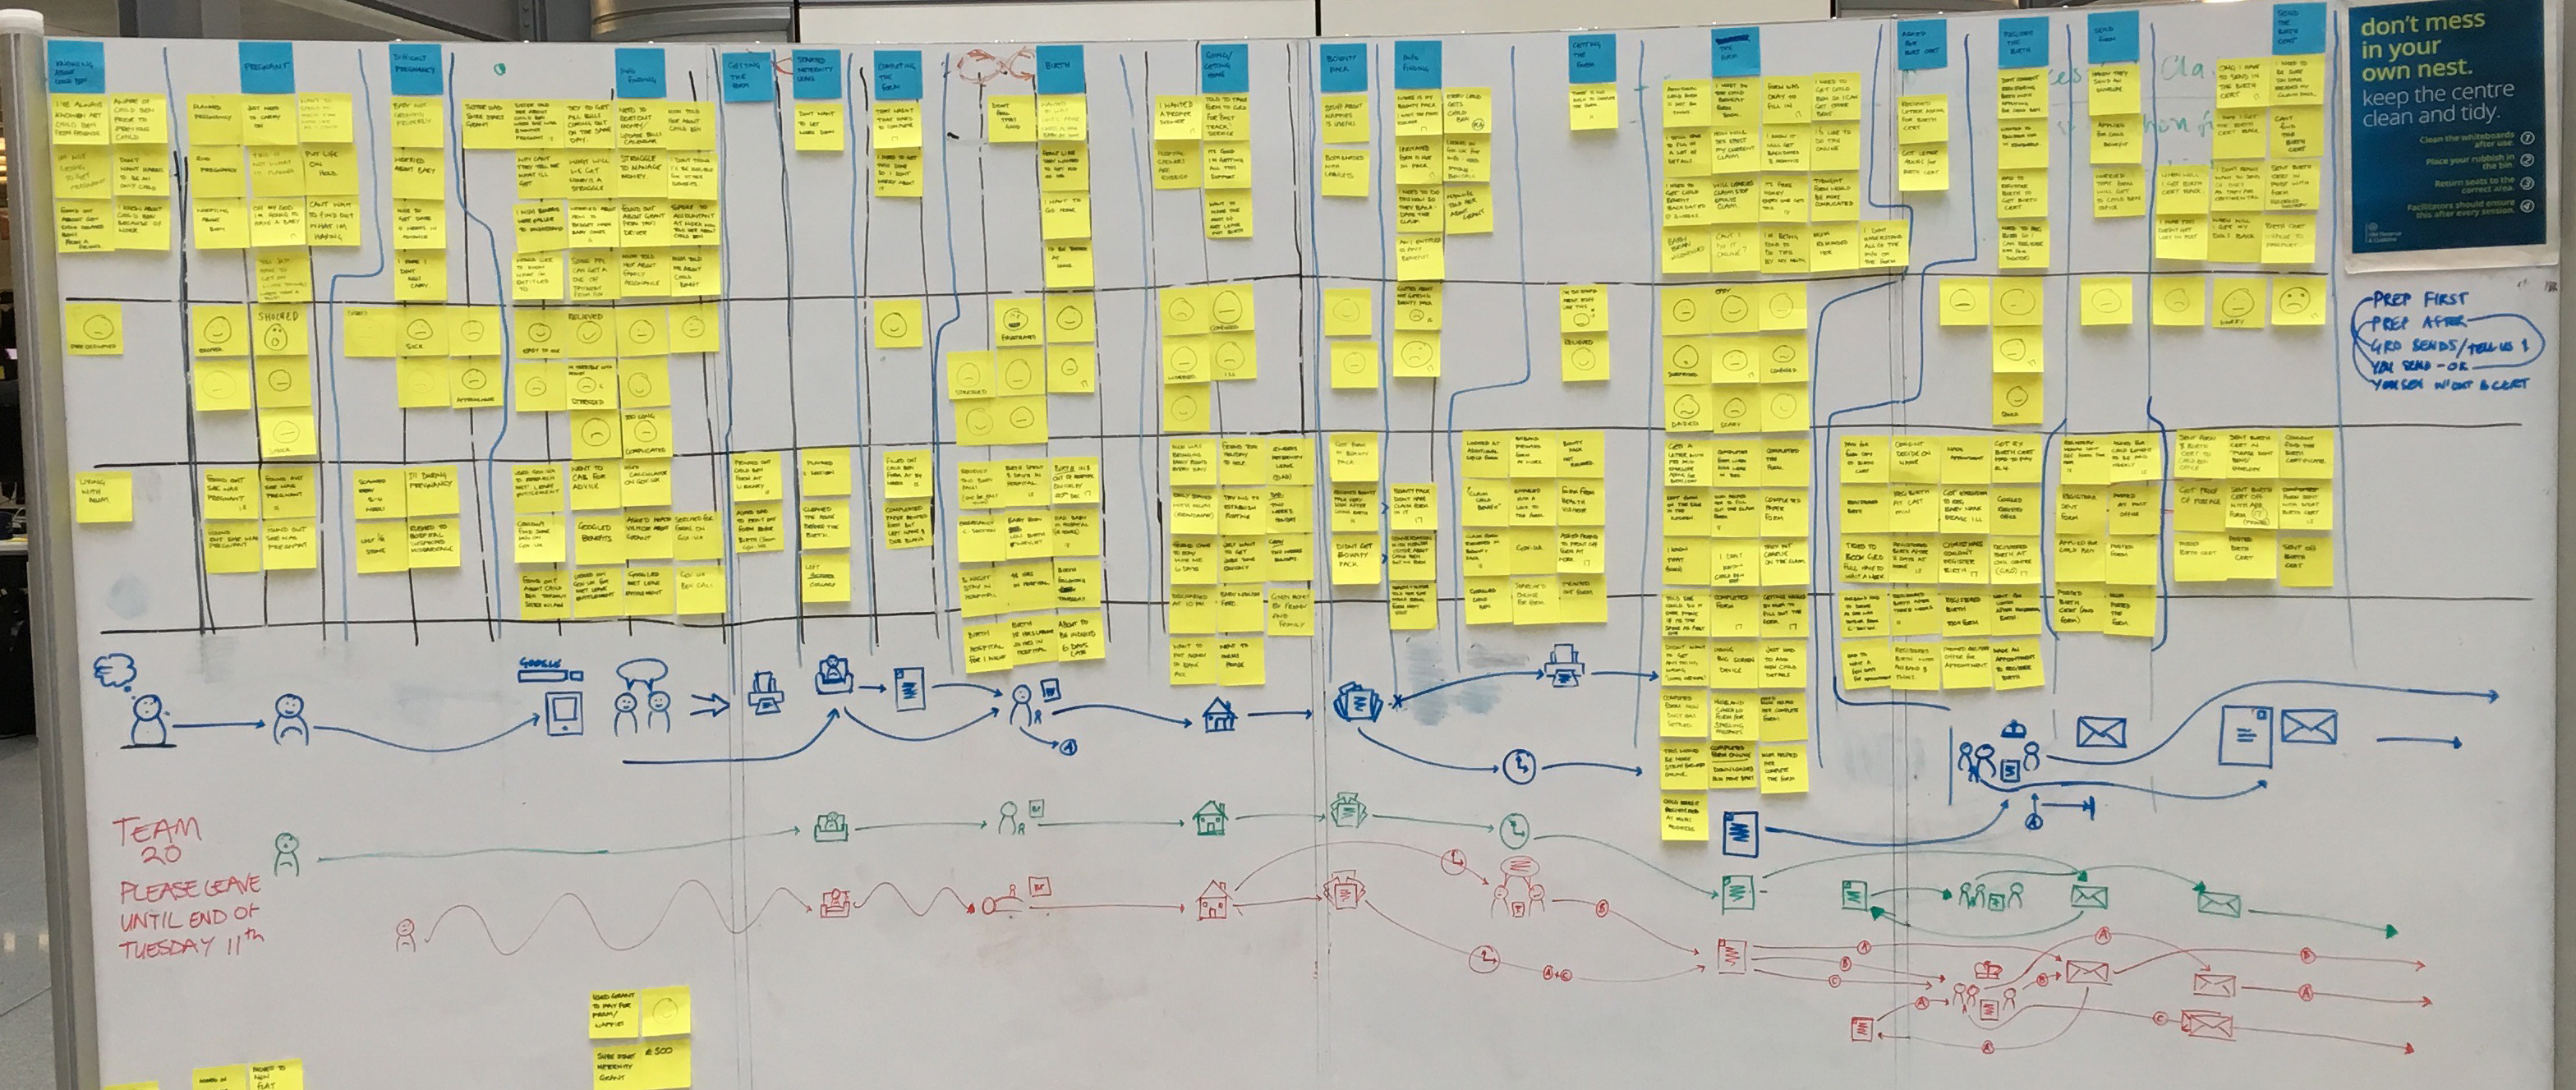 A photo of the service map made using post-it notes and a whiteboard